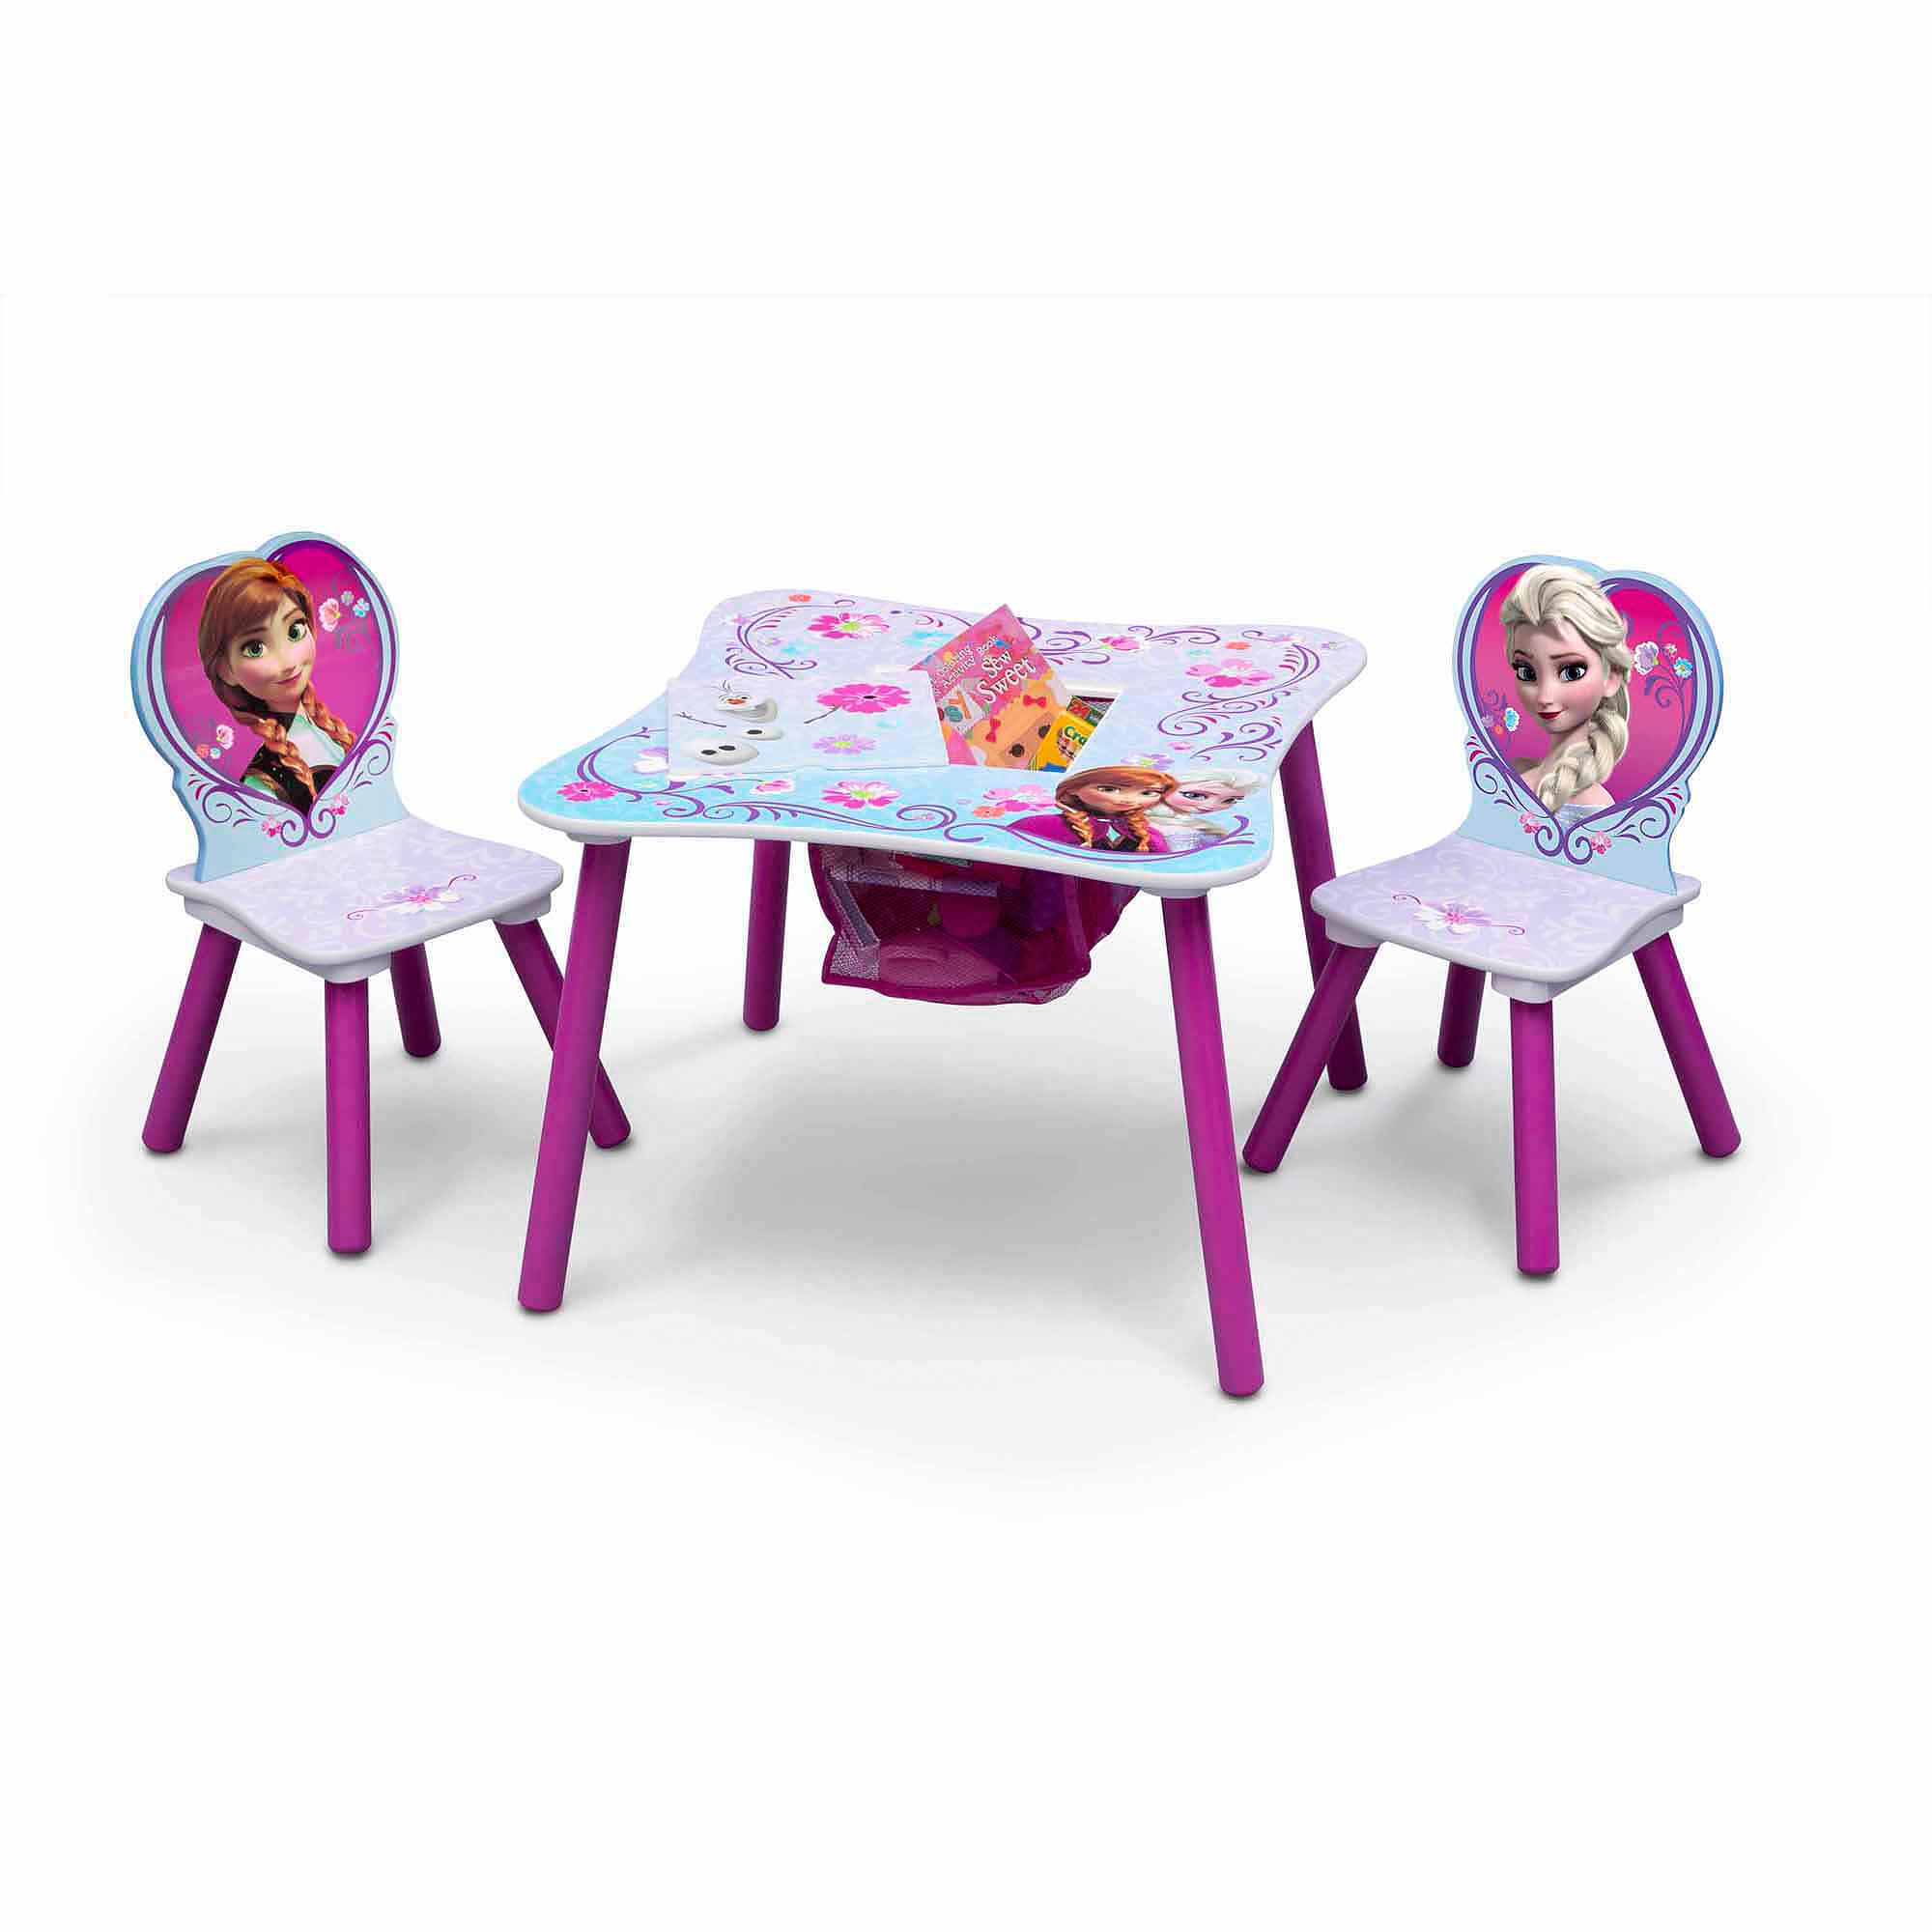 Disney Frozen Table and Chair Set with Storage